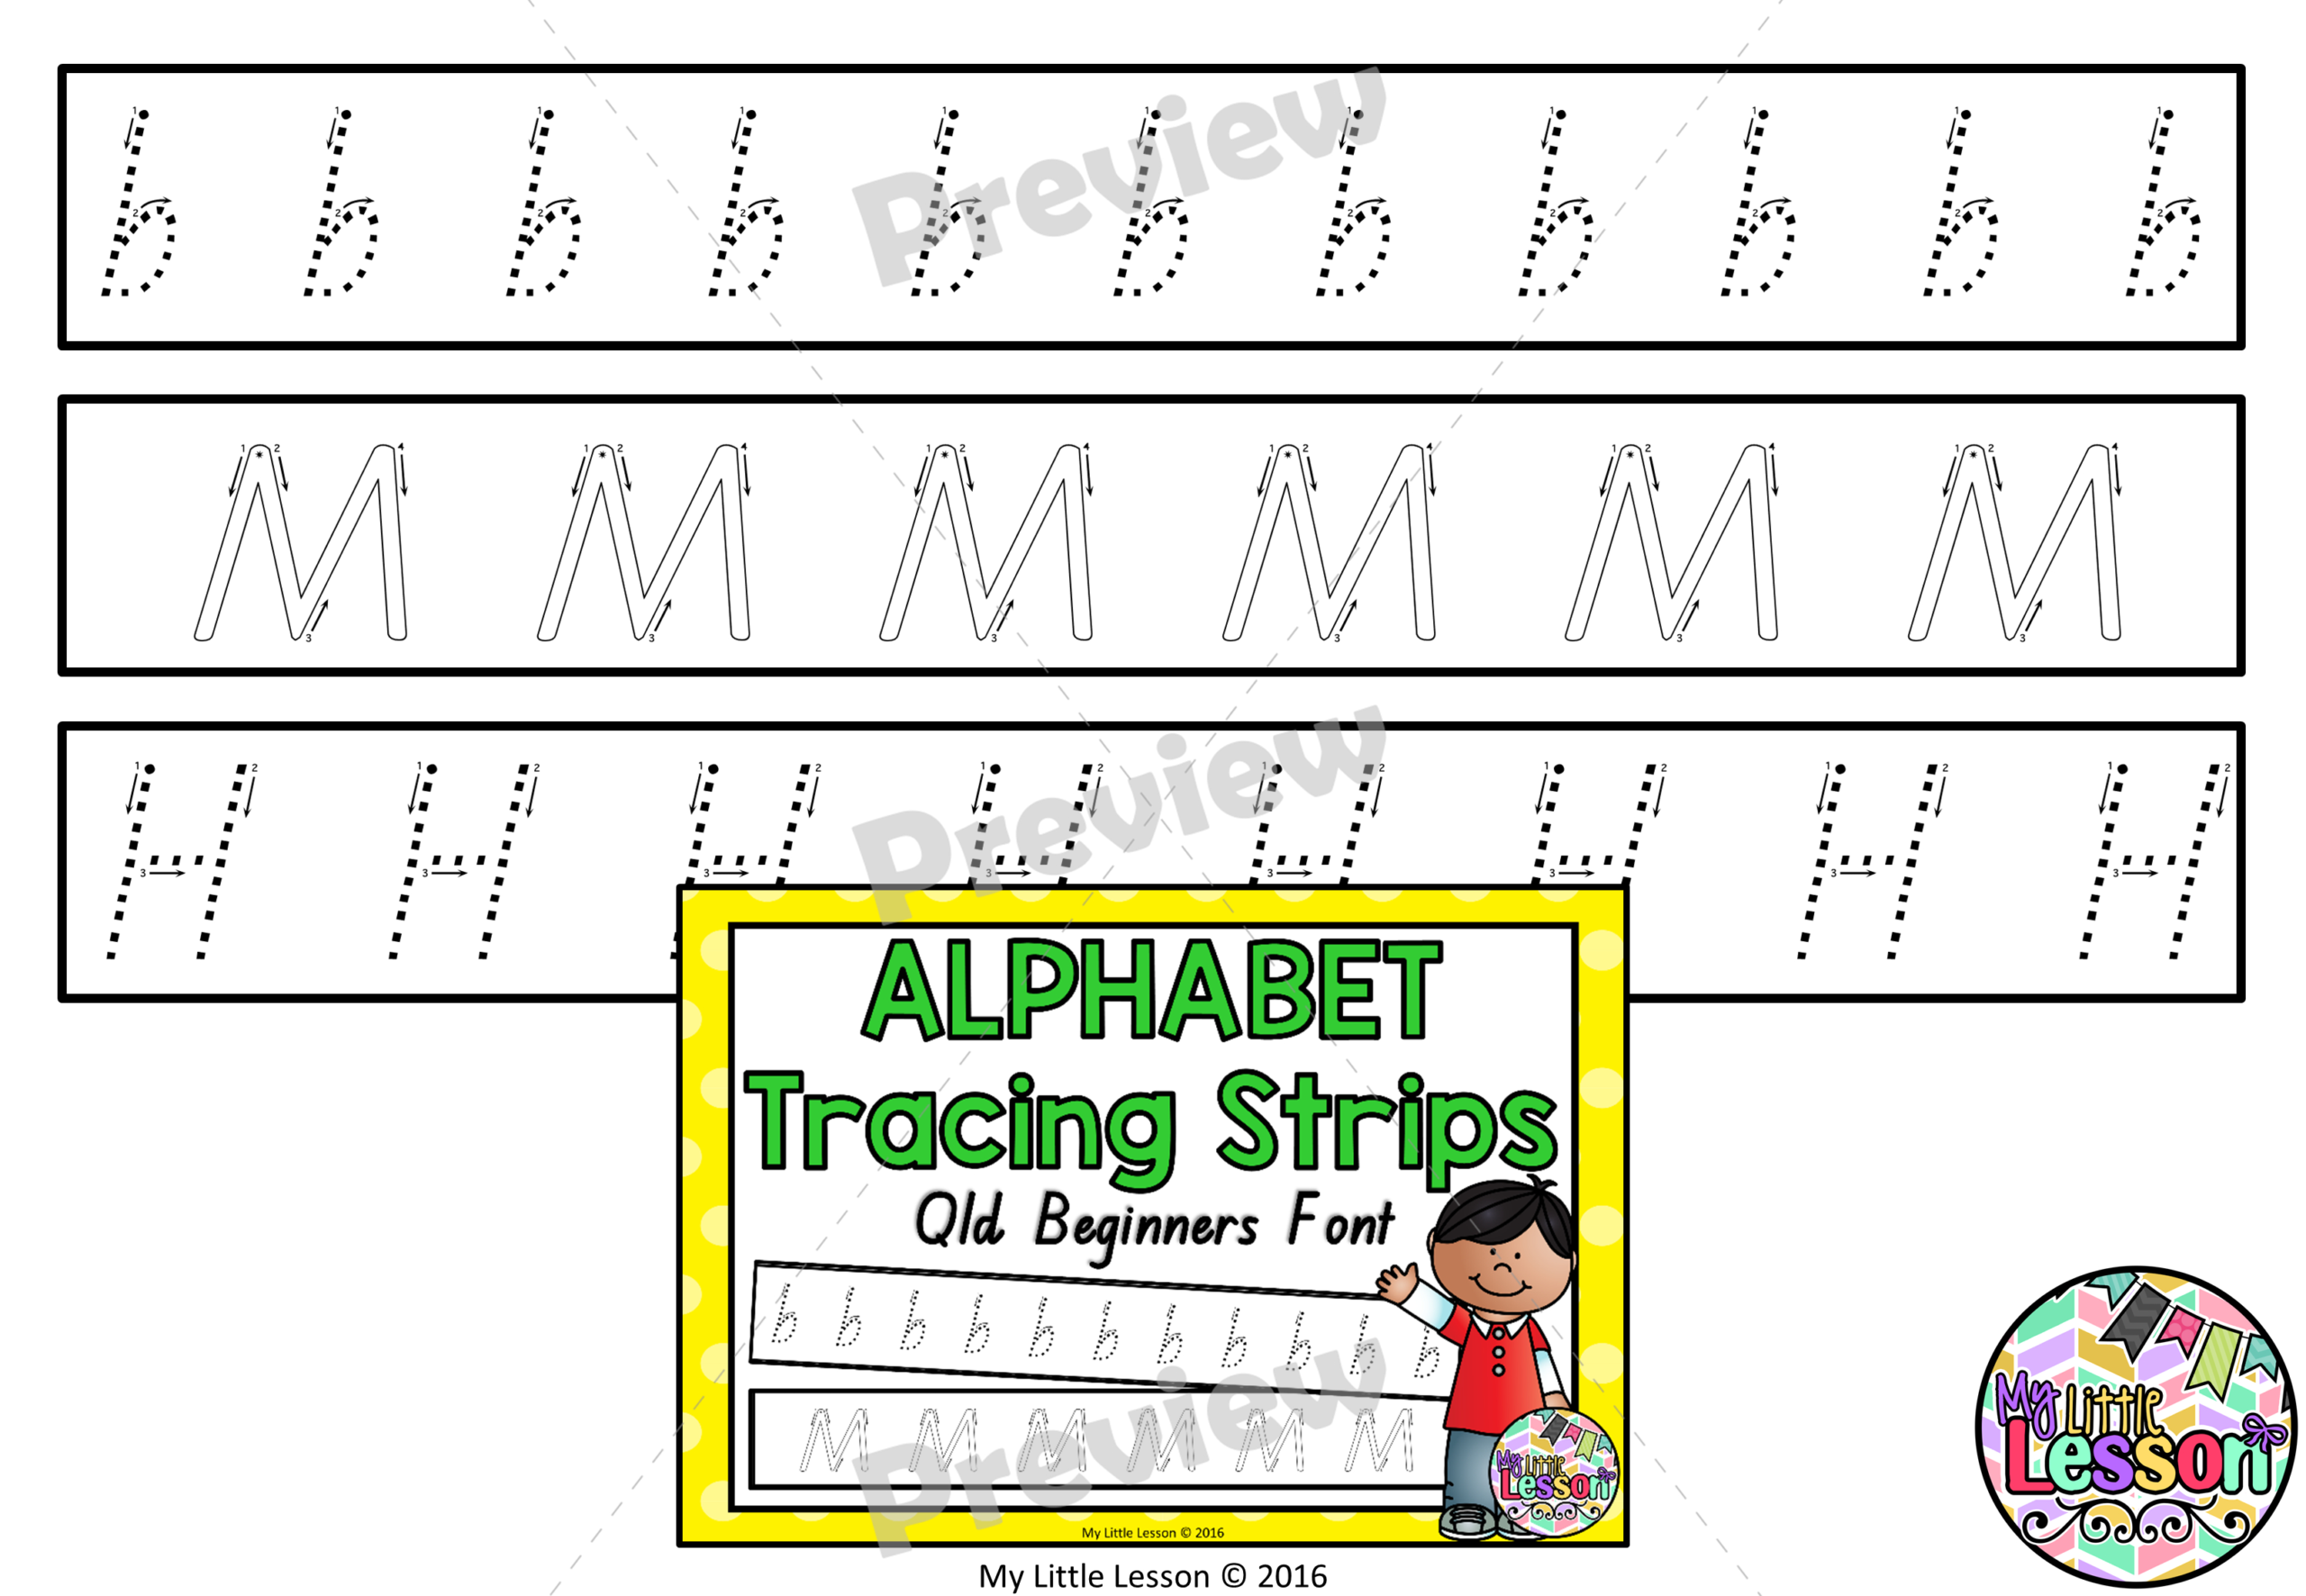 Alphabet Tracing Strips Qld Beginners Font intended for Queensland Alphabet Tracing